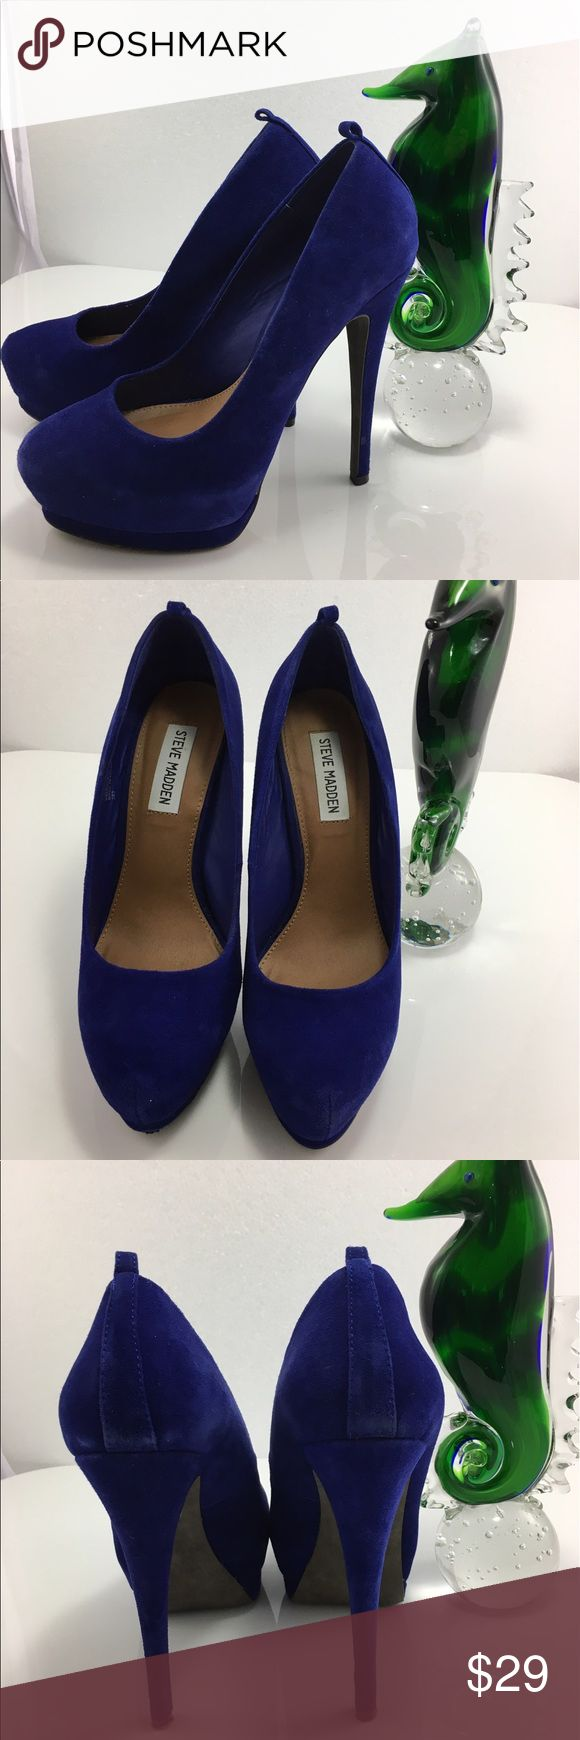 """💸Steve Madden Obsessed deep blue suede pump sz 8M 💸Steve Madden Obsessed deep blue suede pumps in size 8M. Heel height 5 1/2"""" high. Platform 1/2"""" in front. You are looking at a pair of Steve Madden pumps in Obsessed style. Heels and soles have little user wear (see pic) otherwise these heels are ready to wear! Absolutely gorgeous, soft and comfy! Steve Madden Shoes Platforms"""